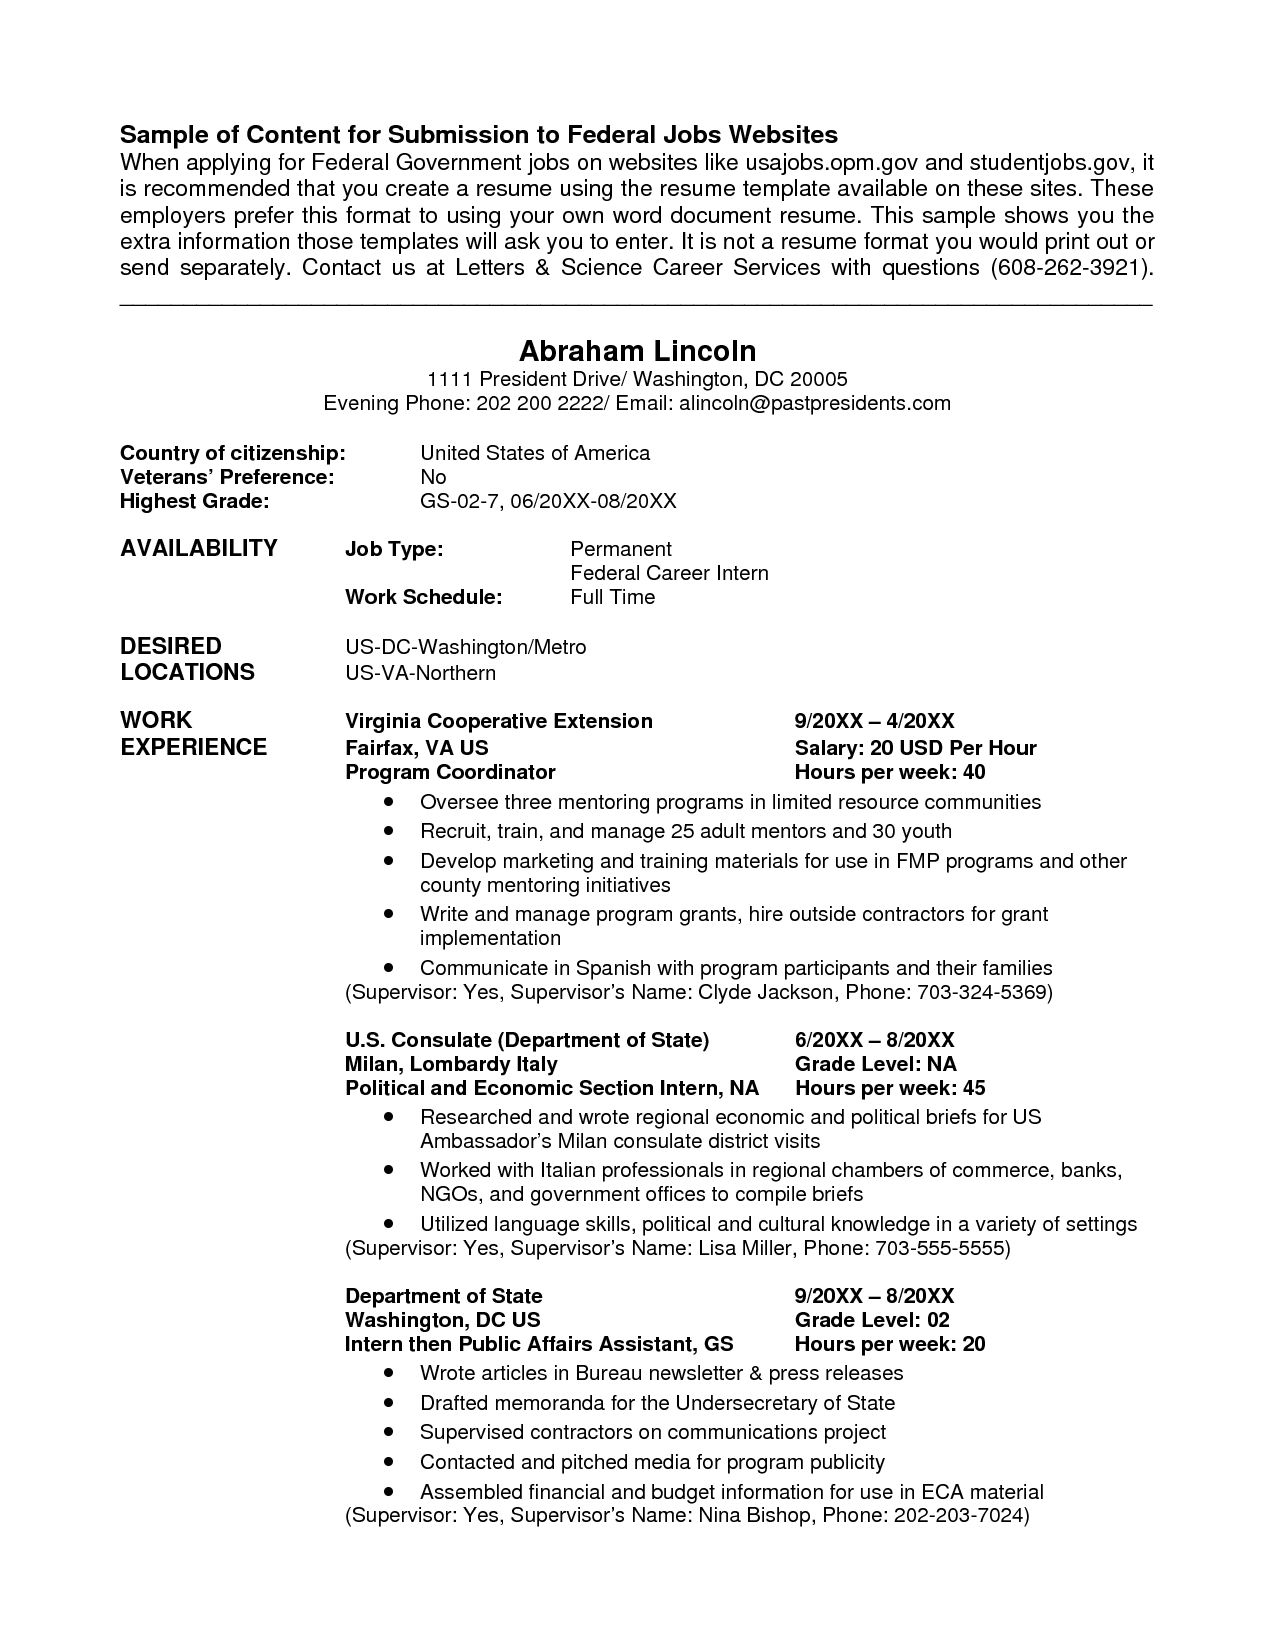 Resume Format Usa Jobs In 2020 Job Resume Template Federal